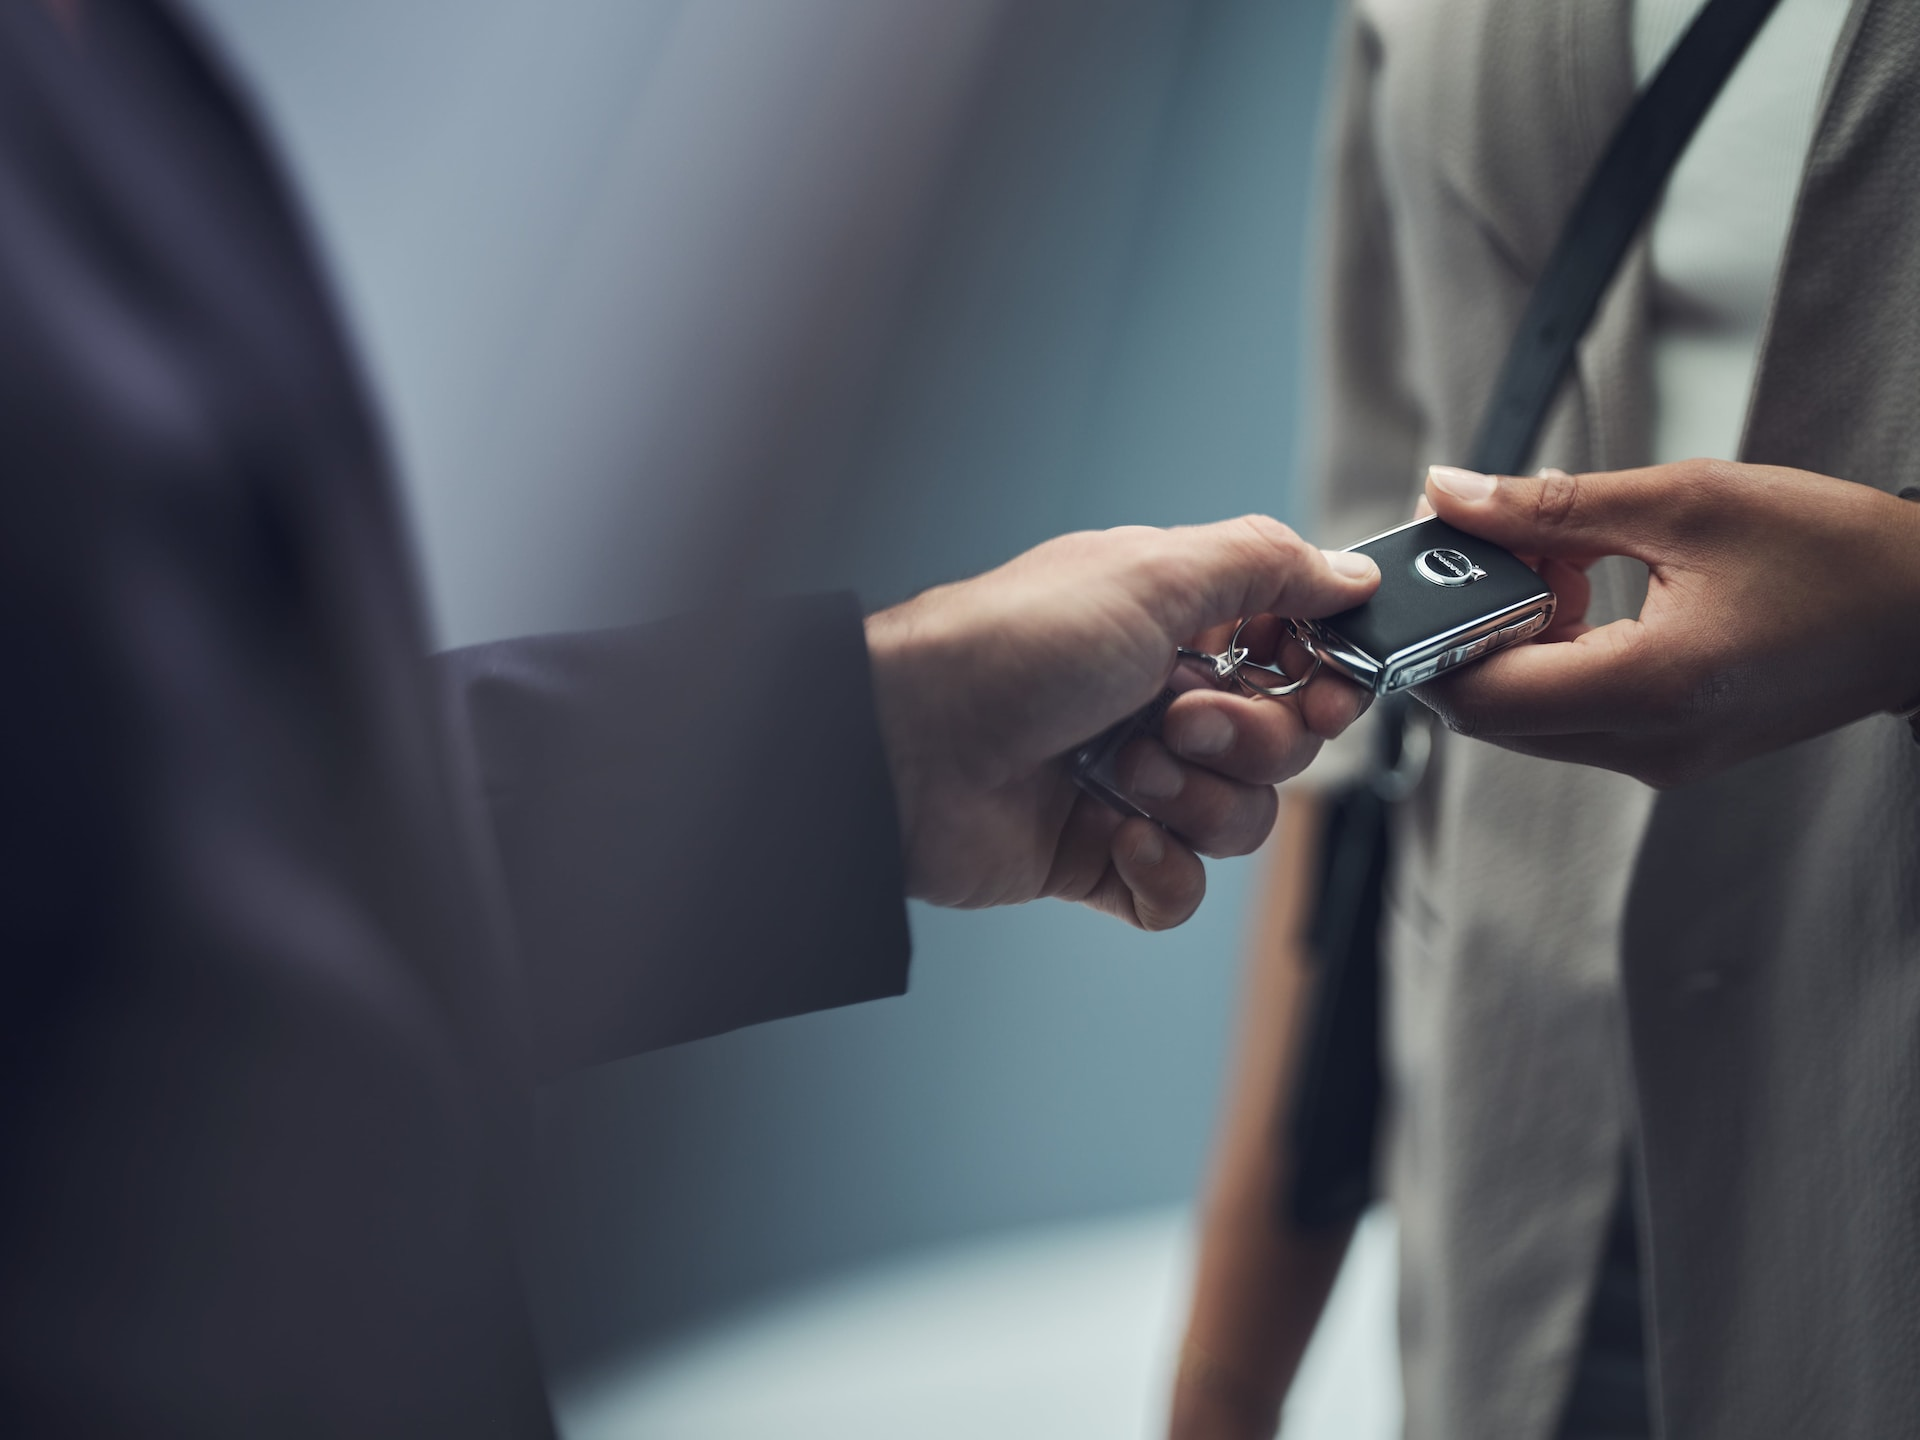 One person handing over a Volvo key to another person.